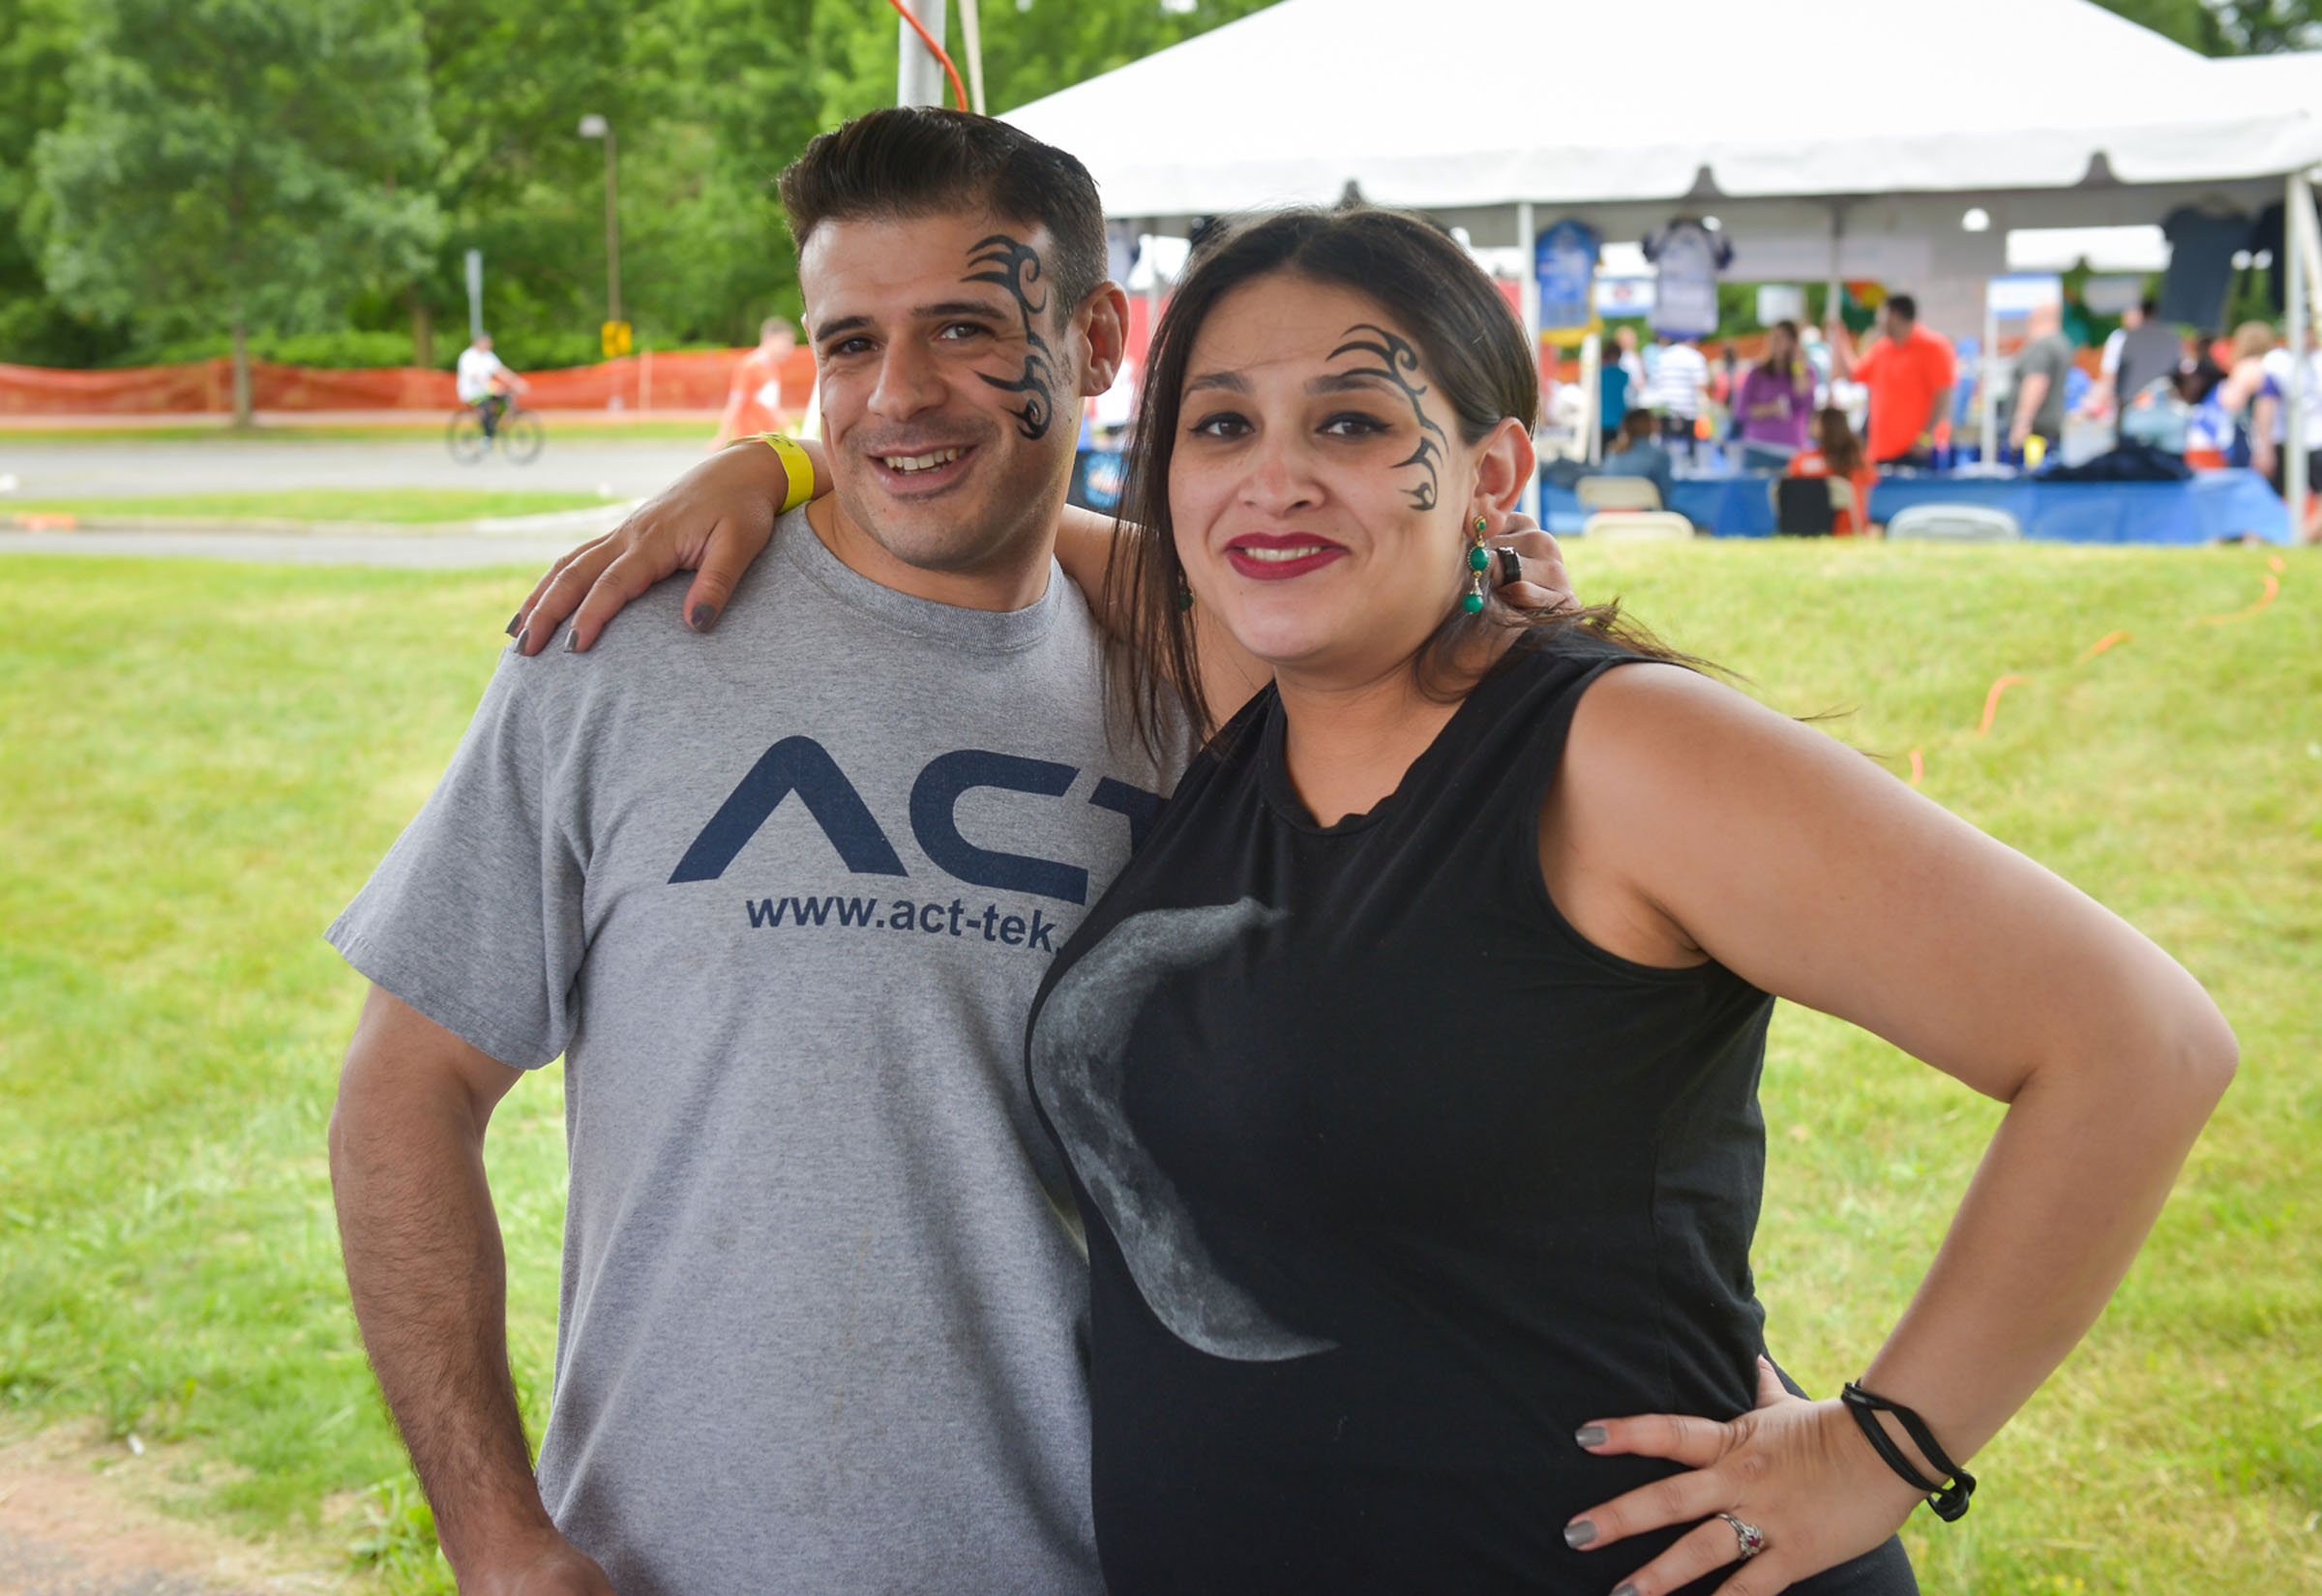 2017-06-04 GTD4A Charity Bike Ride - BCC - Paramus NJ-2495.jpg